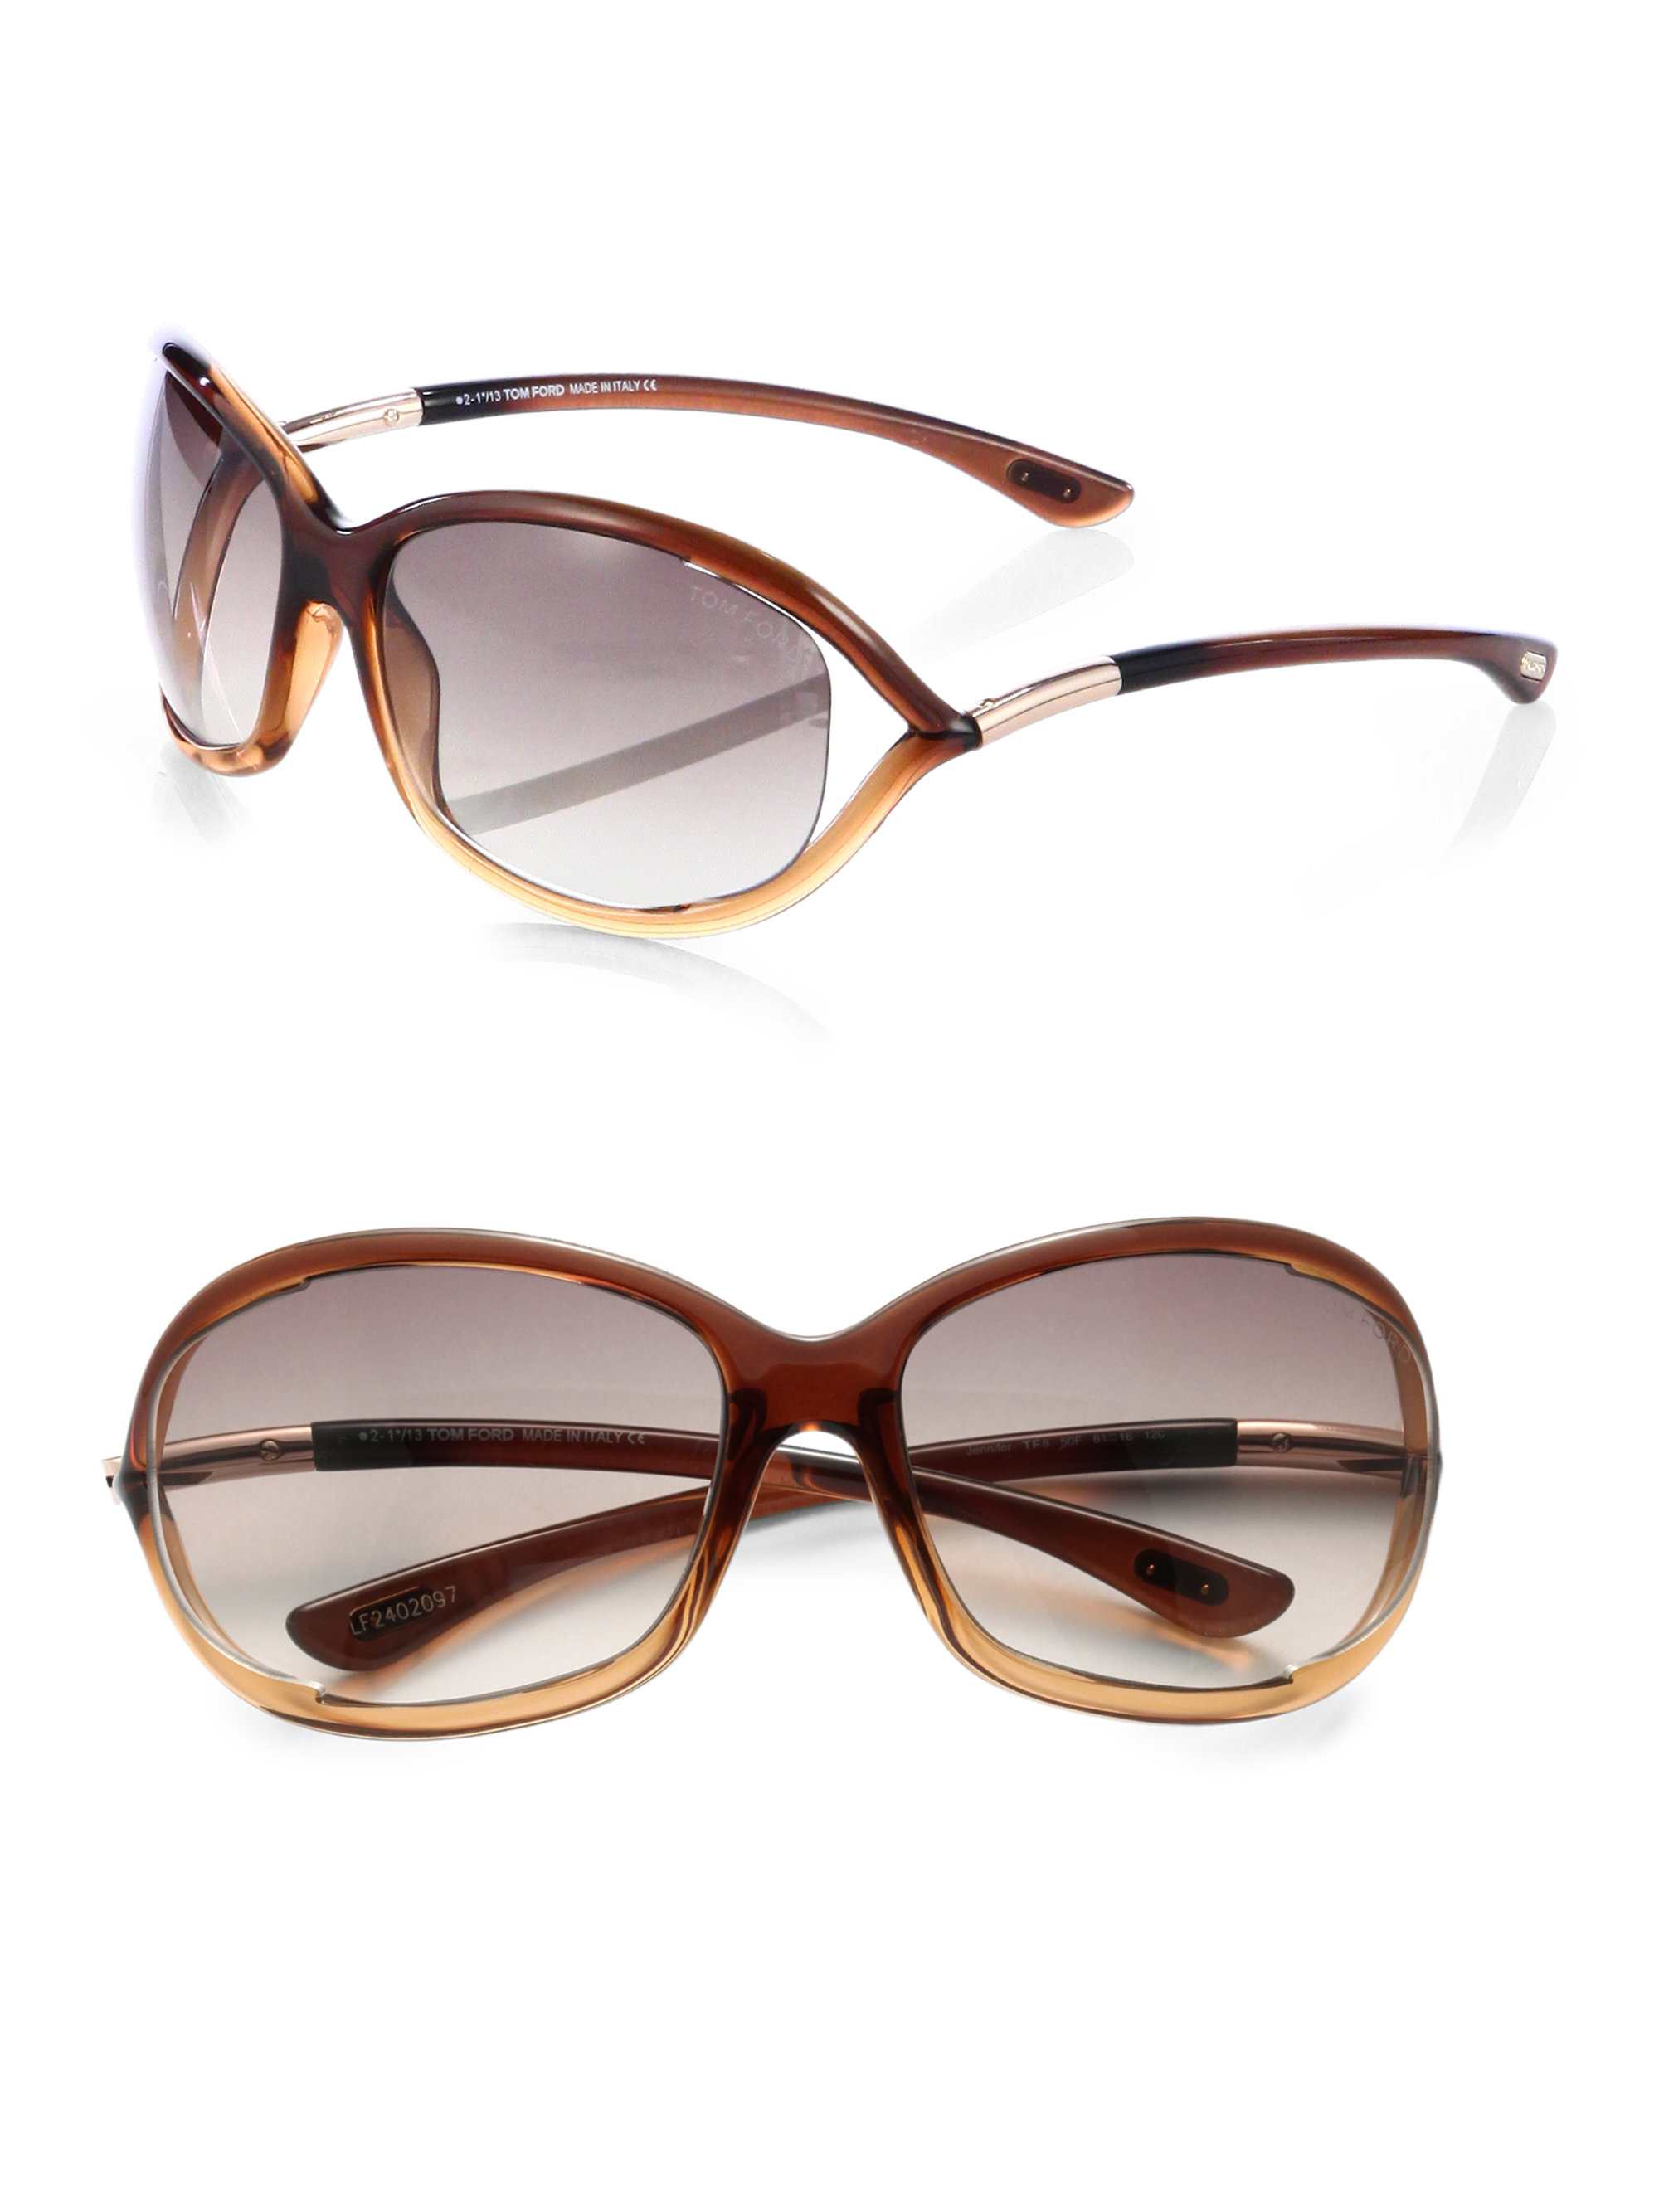 18a968c8214 Tom Ford Jennifer Sunglasses Uk